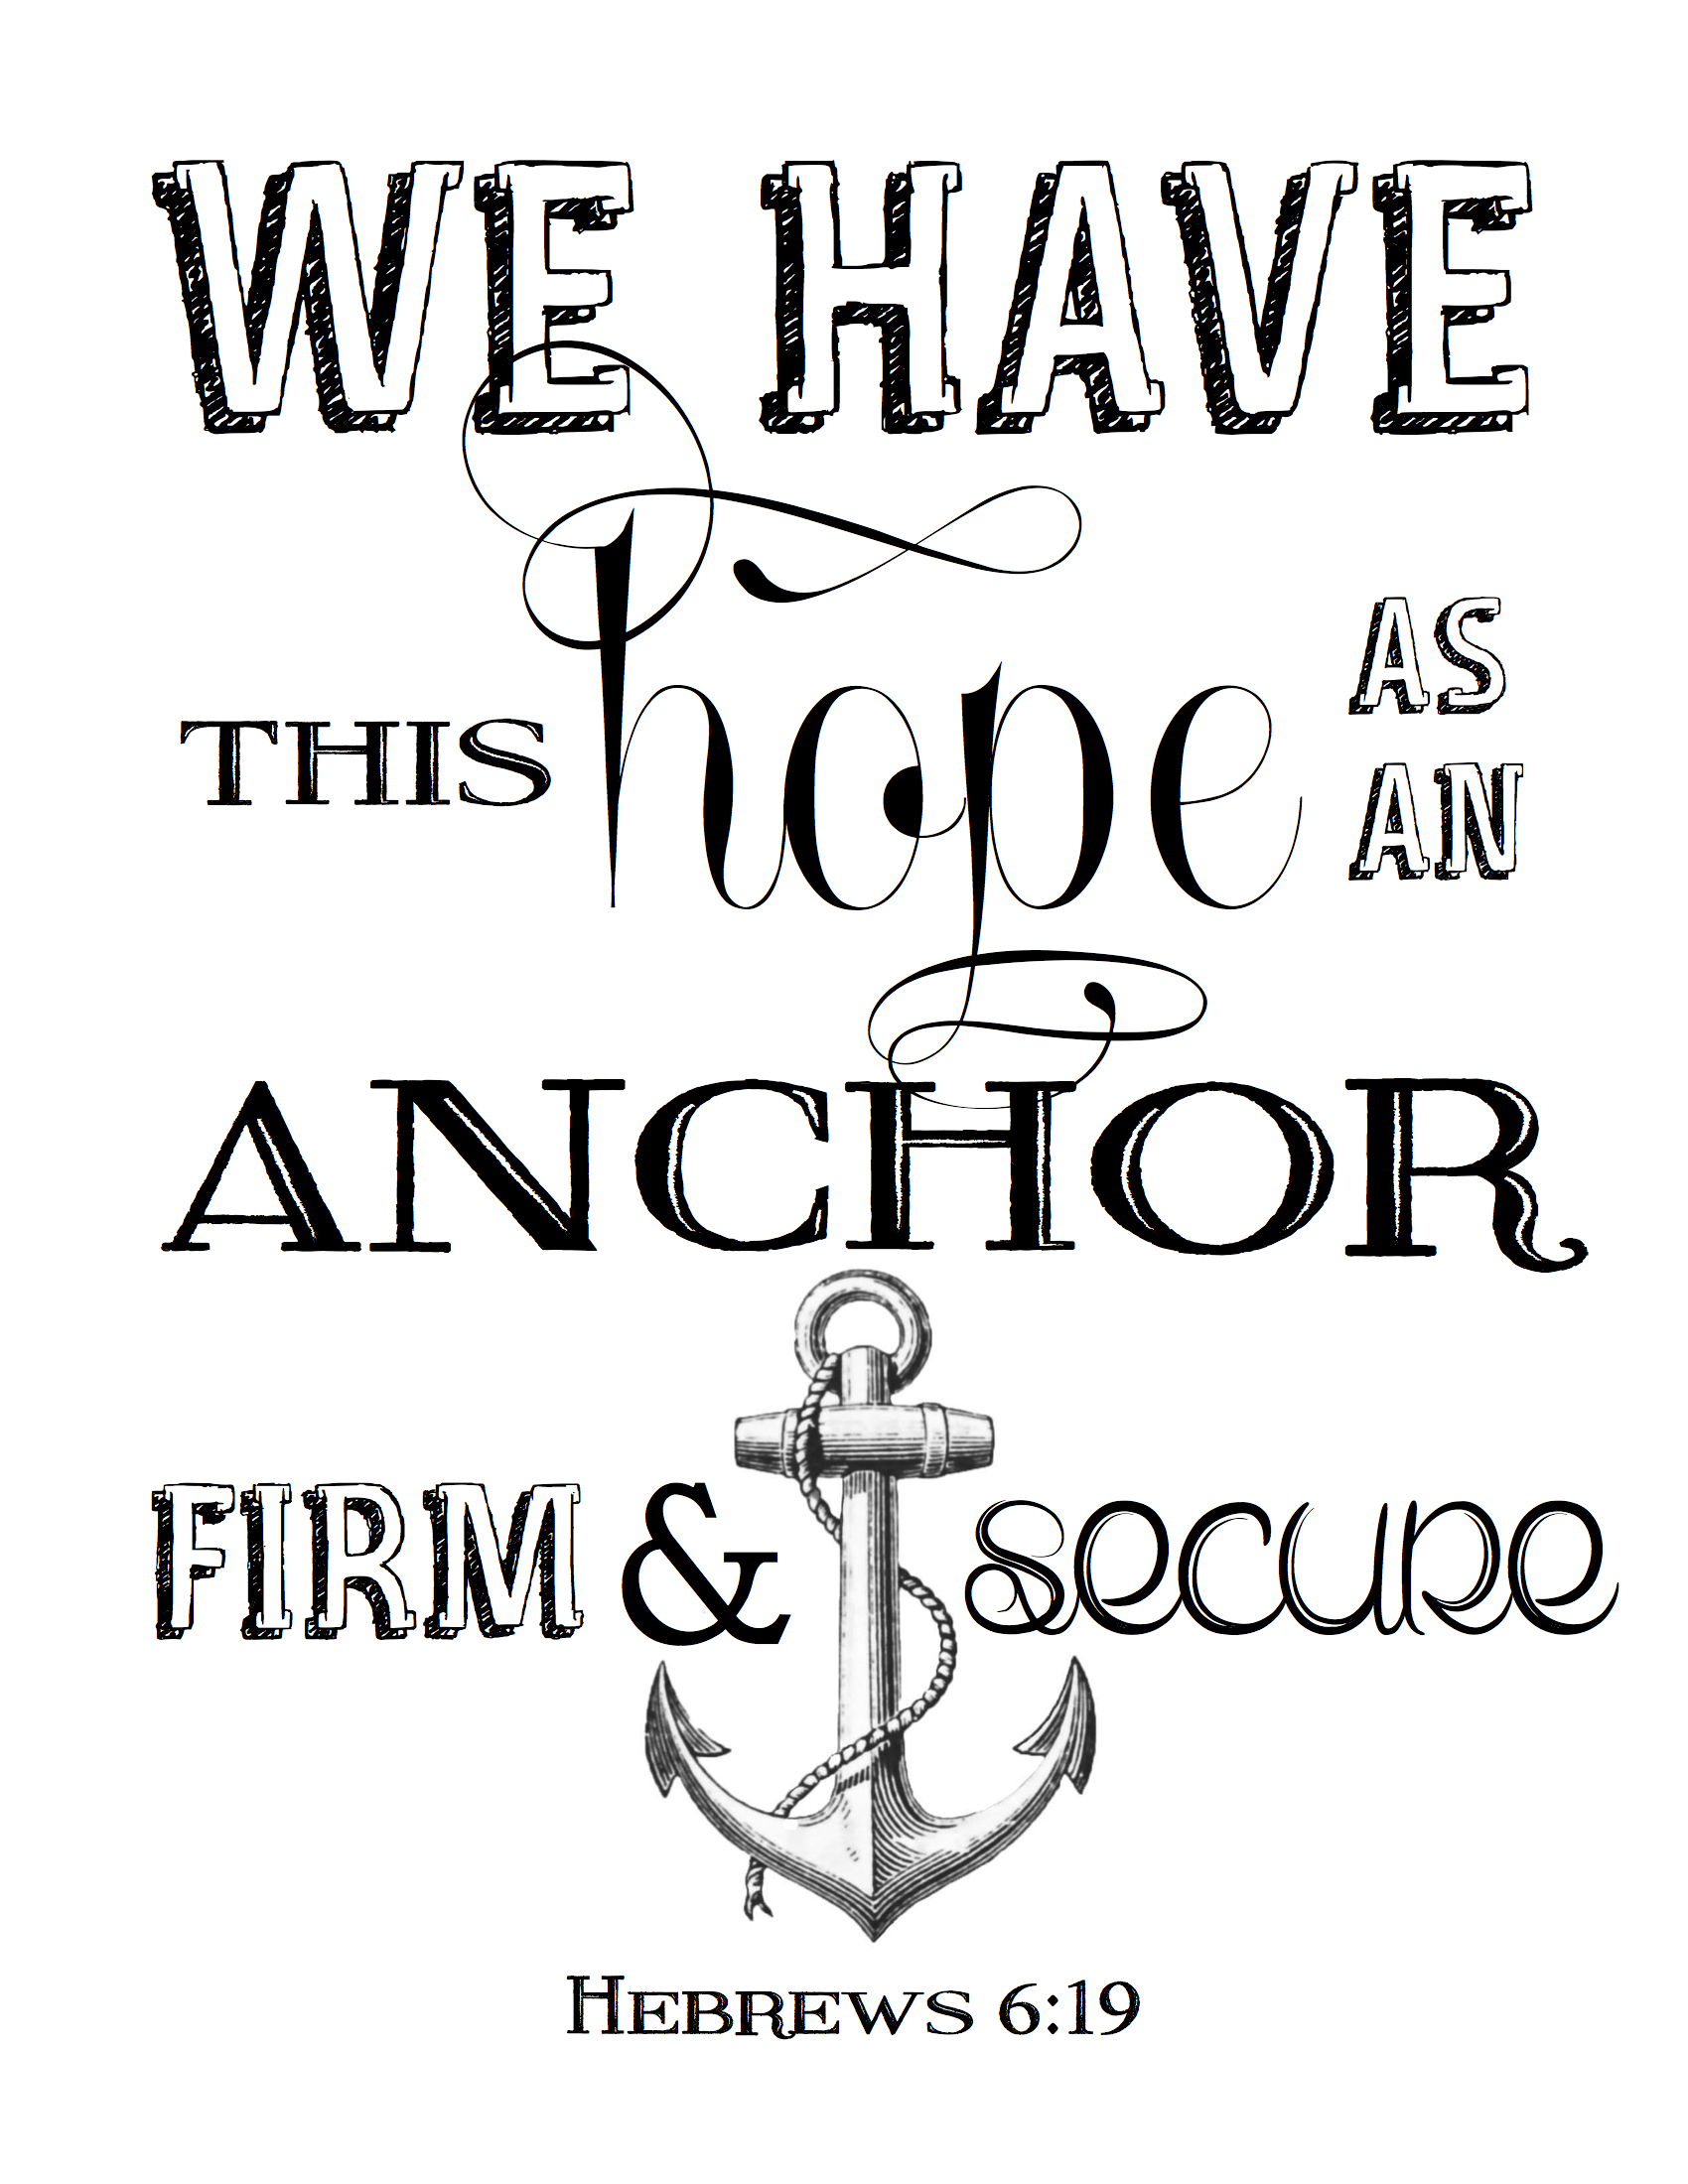 Drawn anchor bible verse Home – Tennessee the Stylish